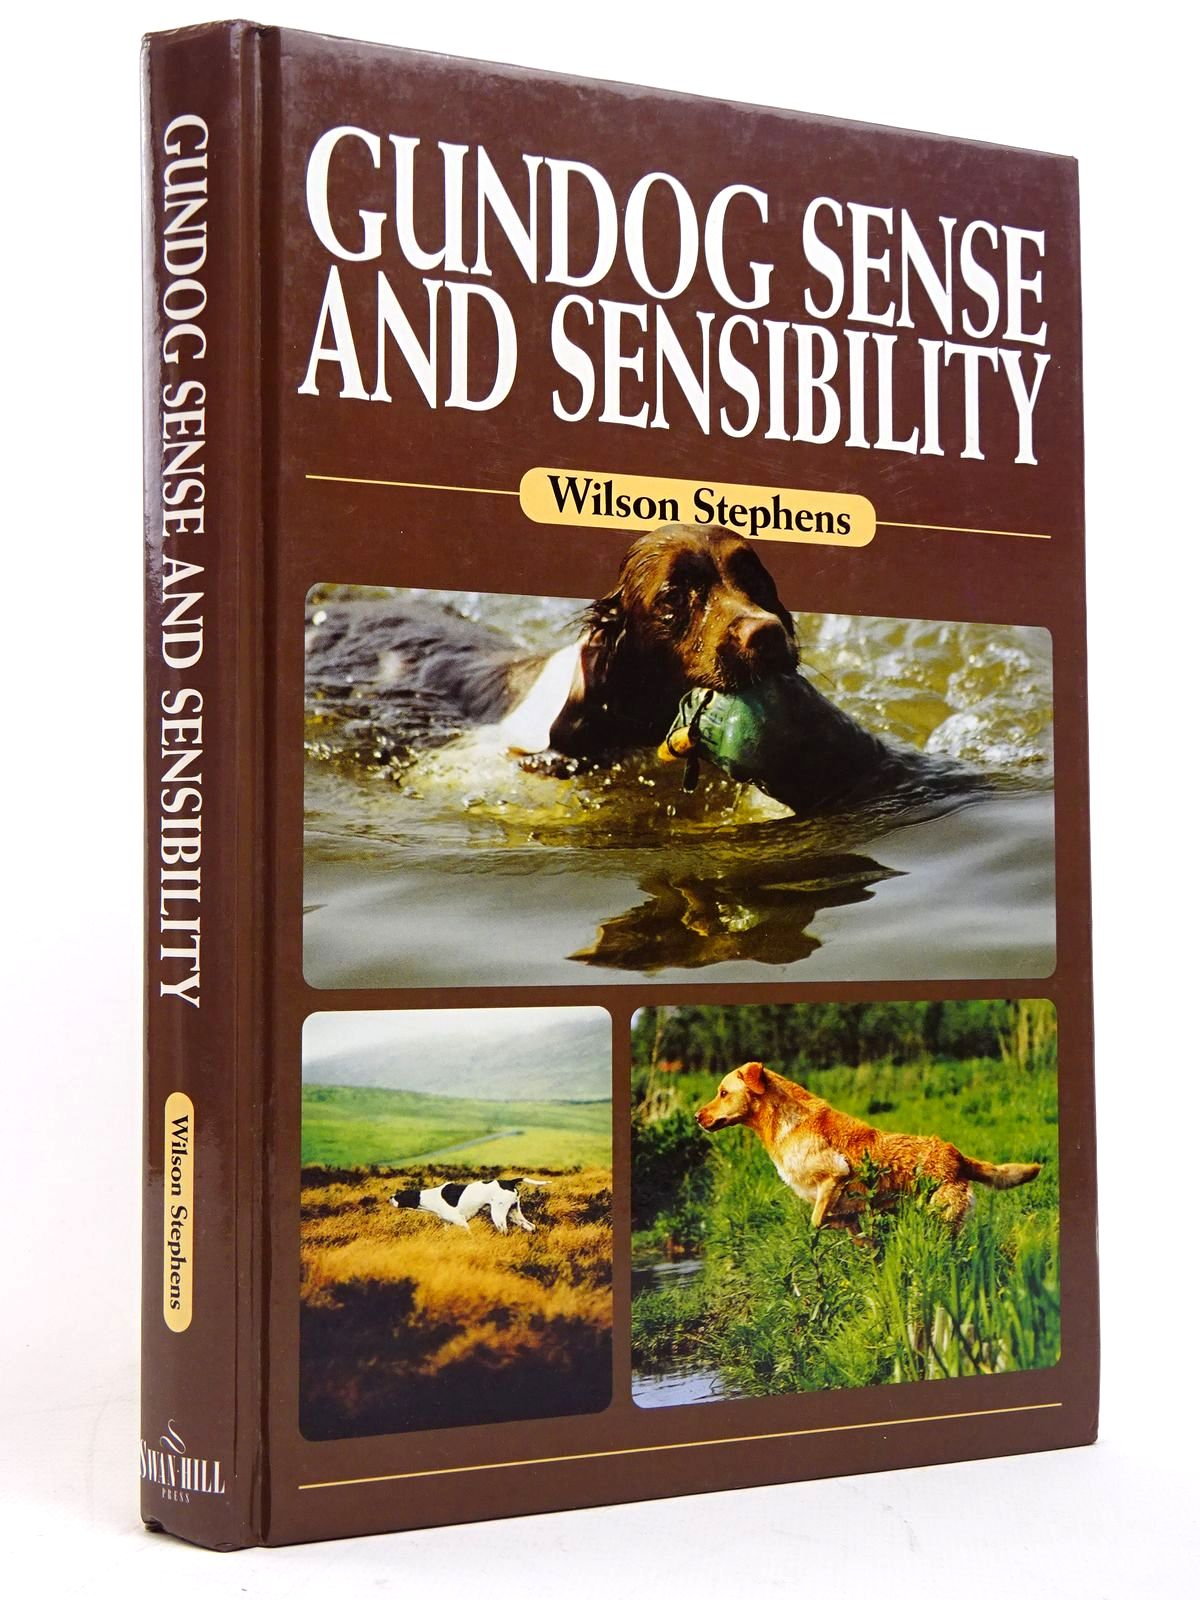 Photo of GUNDOG SENSE AND SENSIBILITY written by Stephens, Wilson illustrated by Scott, Mary Beattie published by Swan Hill Press (STOCK CODE: 1817665)  for sale by Stella & Rose's Books